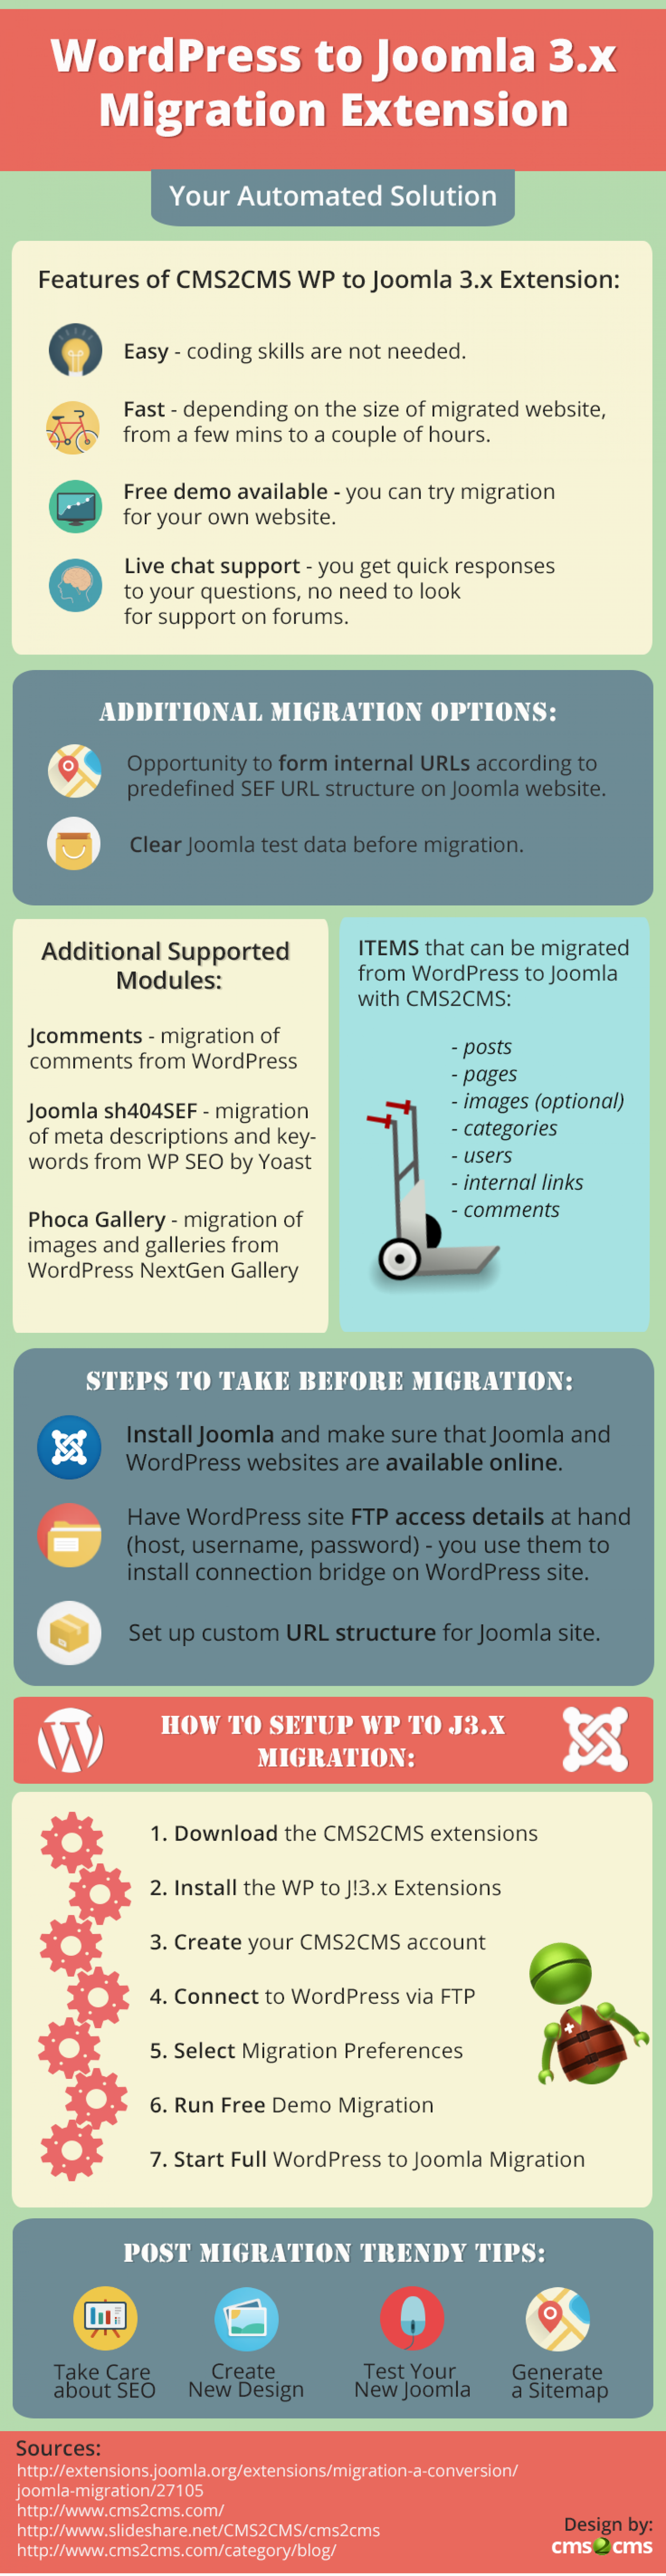 CMS2CMS WordPress to Joomla Extension: How It Works Infographic